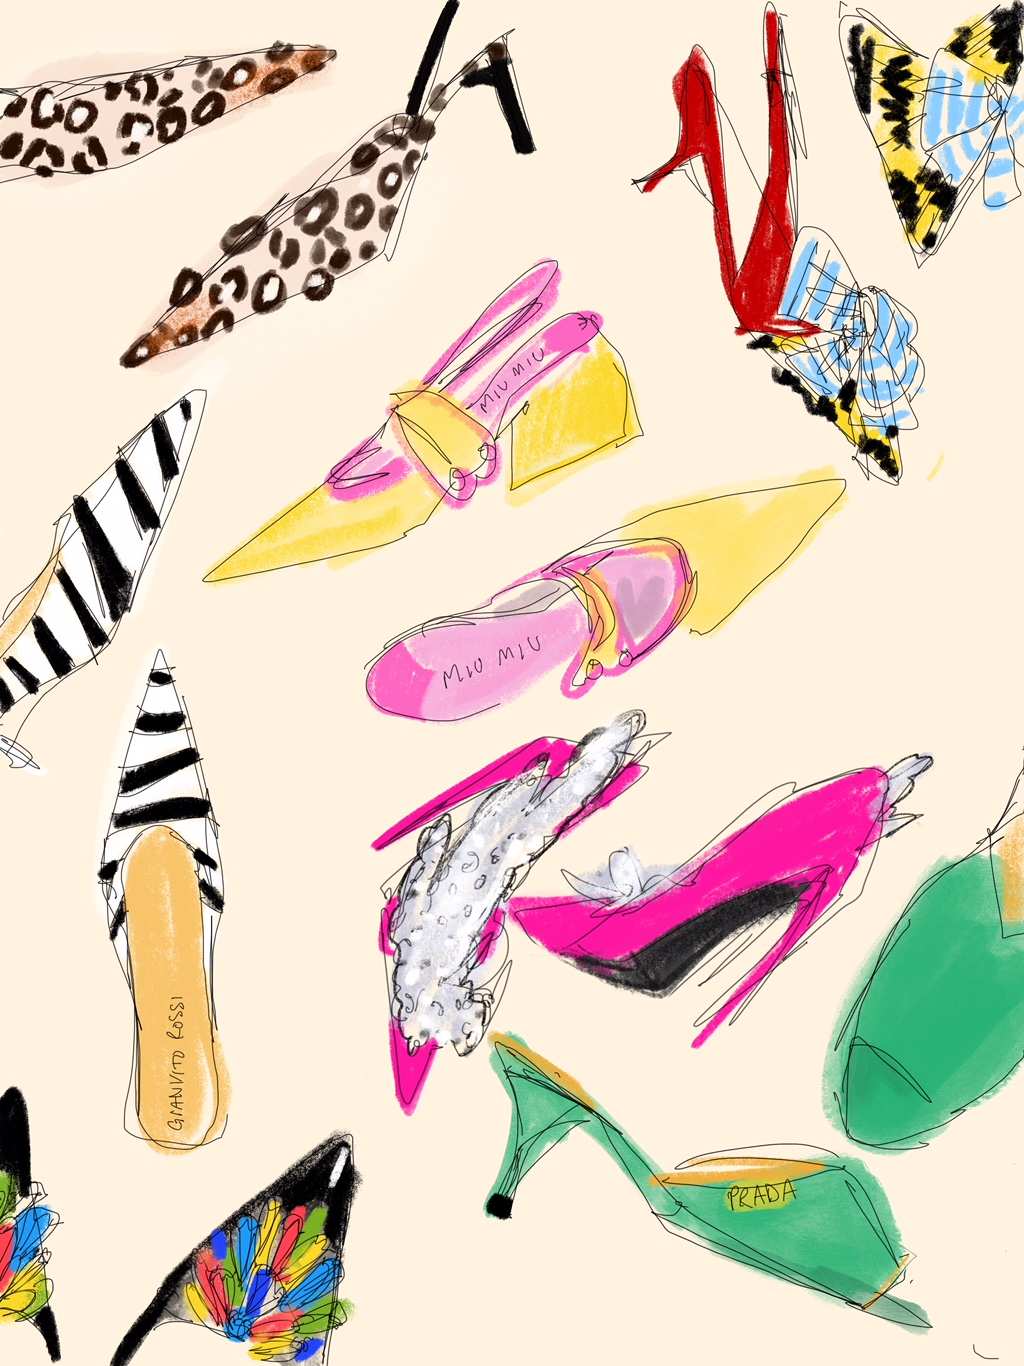 Digital Sketch of Different Sandals